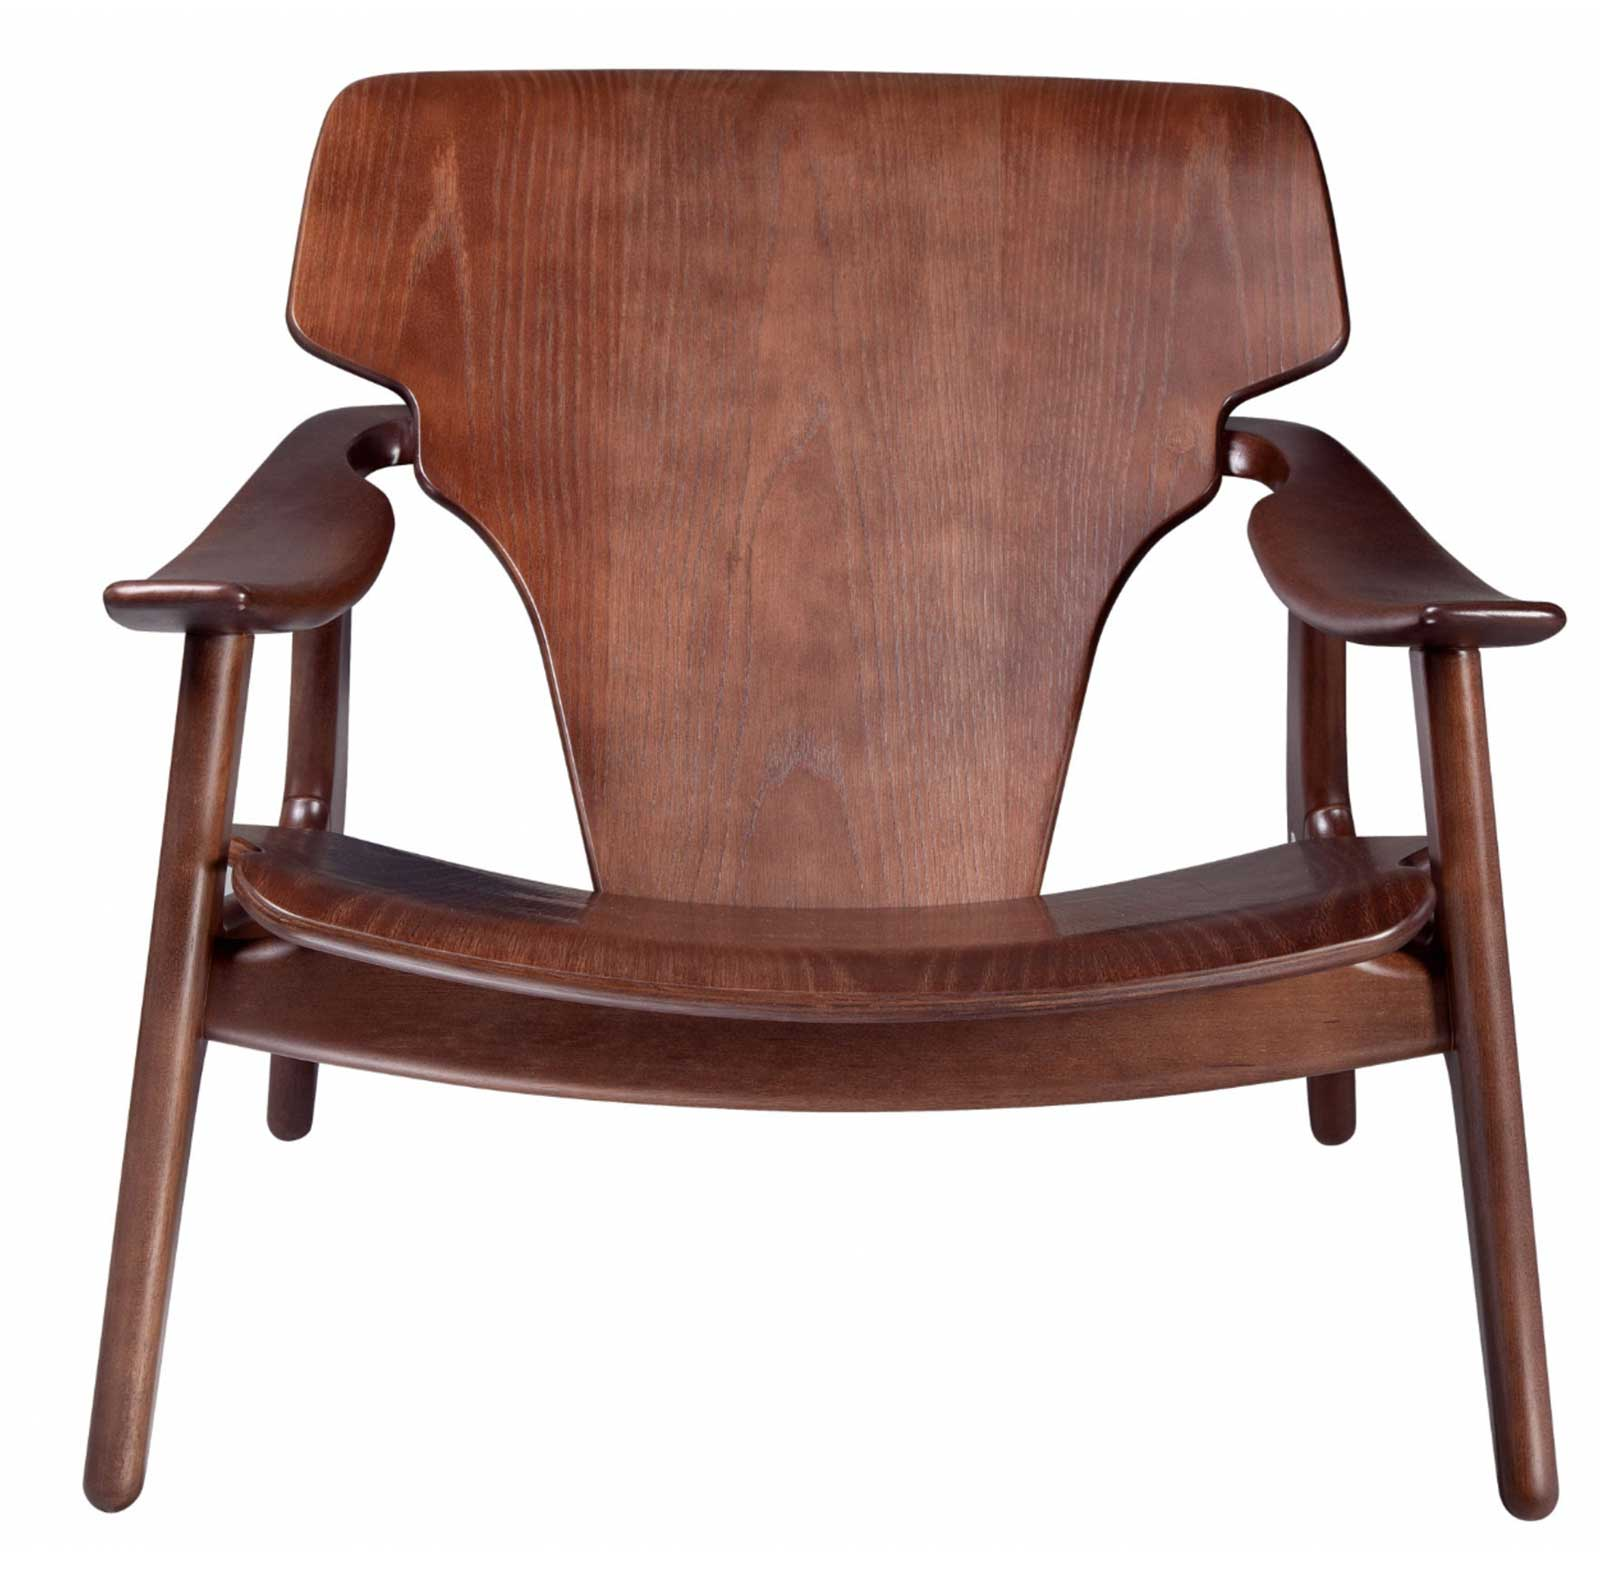 Awesome Diz Chair By Sergio Rodrigues